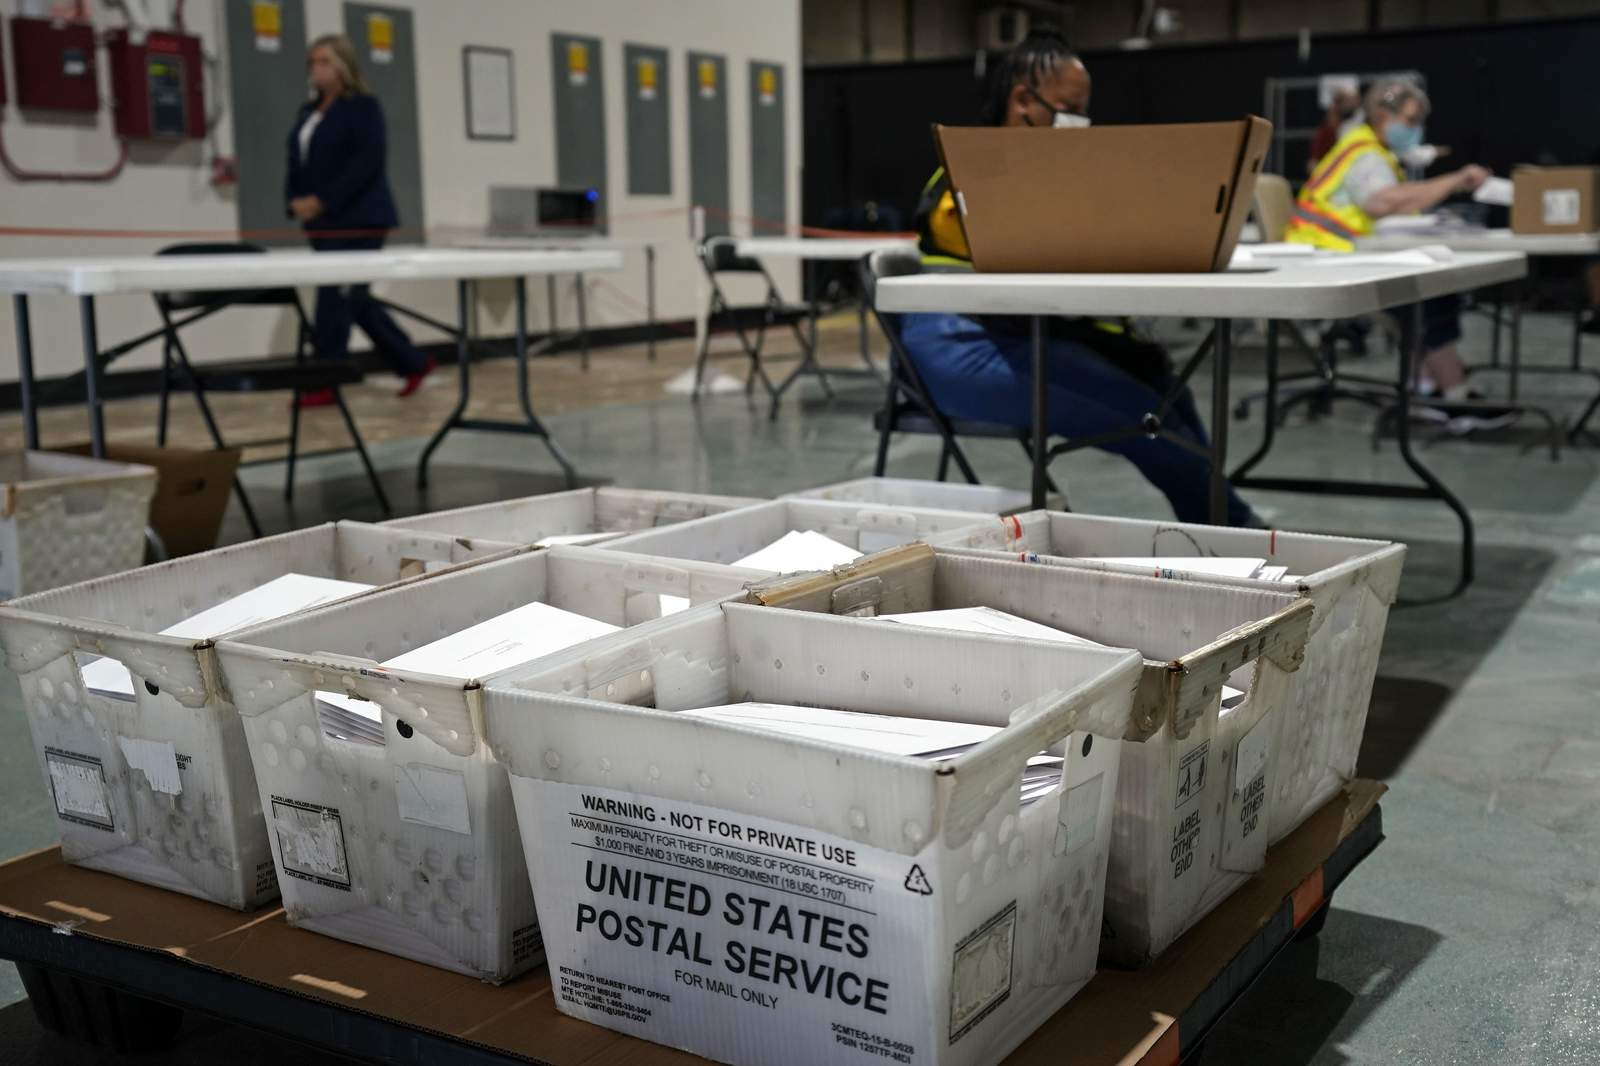 Witness mandate vex some new mail-in voters in key states